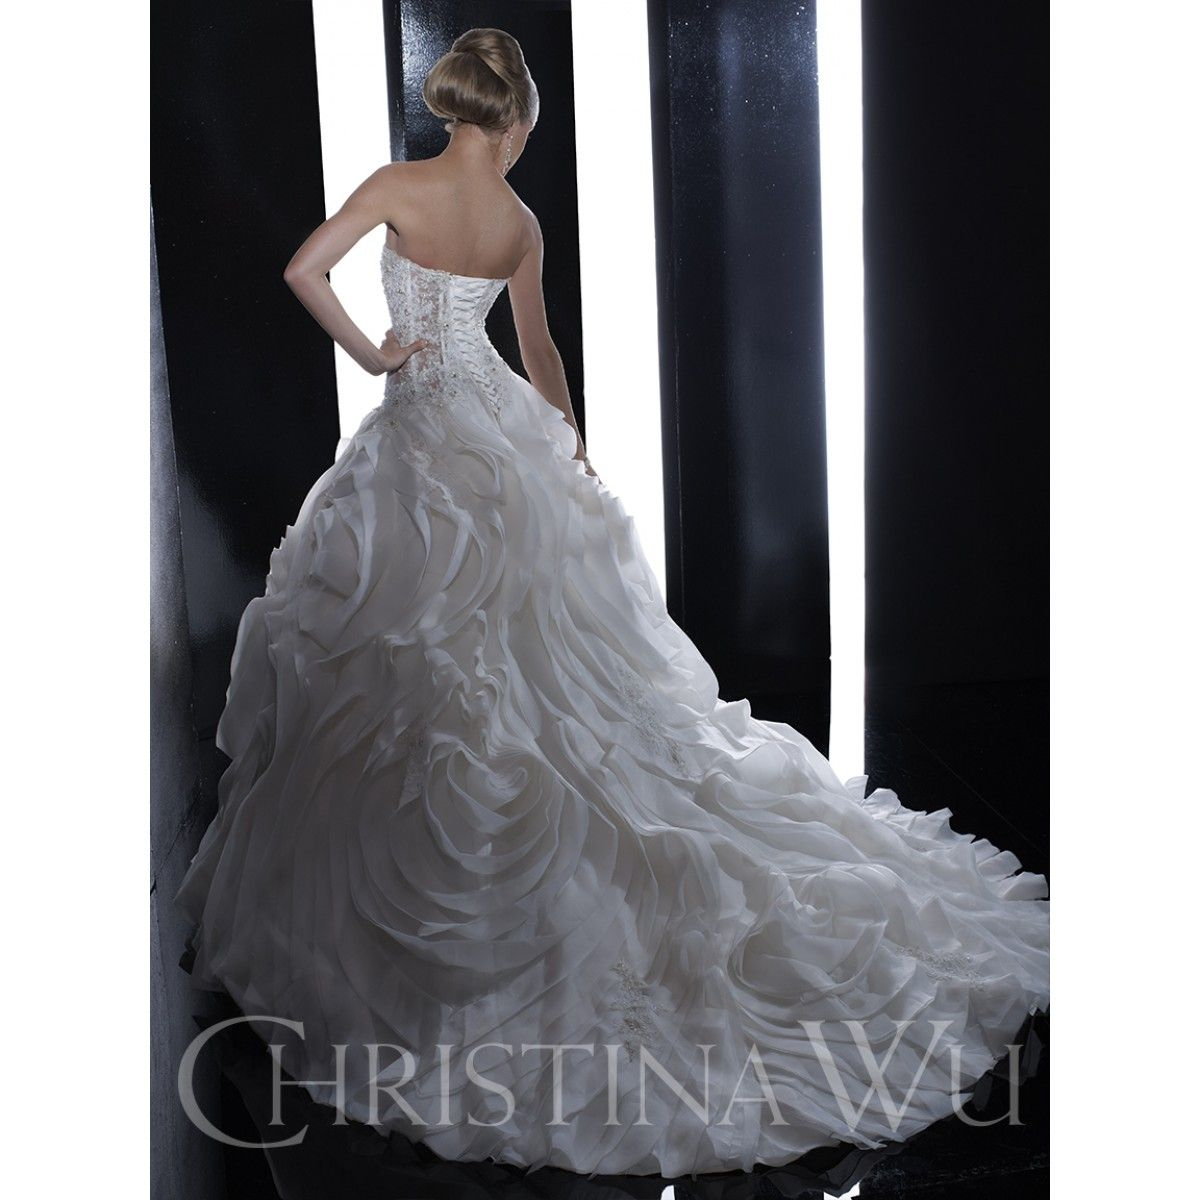 Covered shoulder wedding dresses  Christina Wu Style  is a strapless wedding dress featuring a